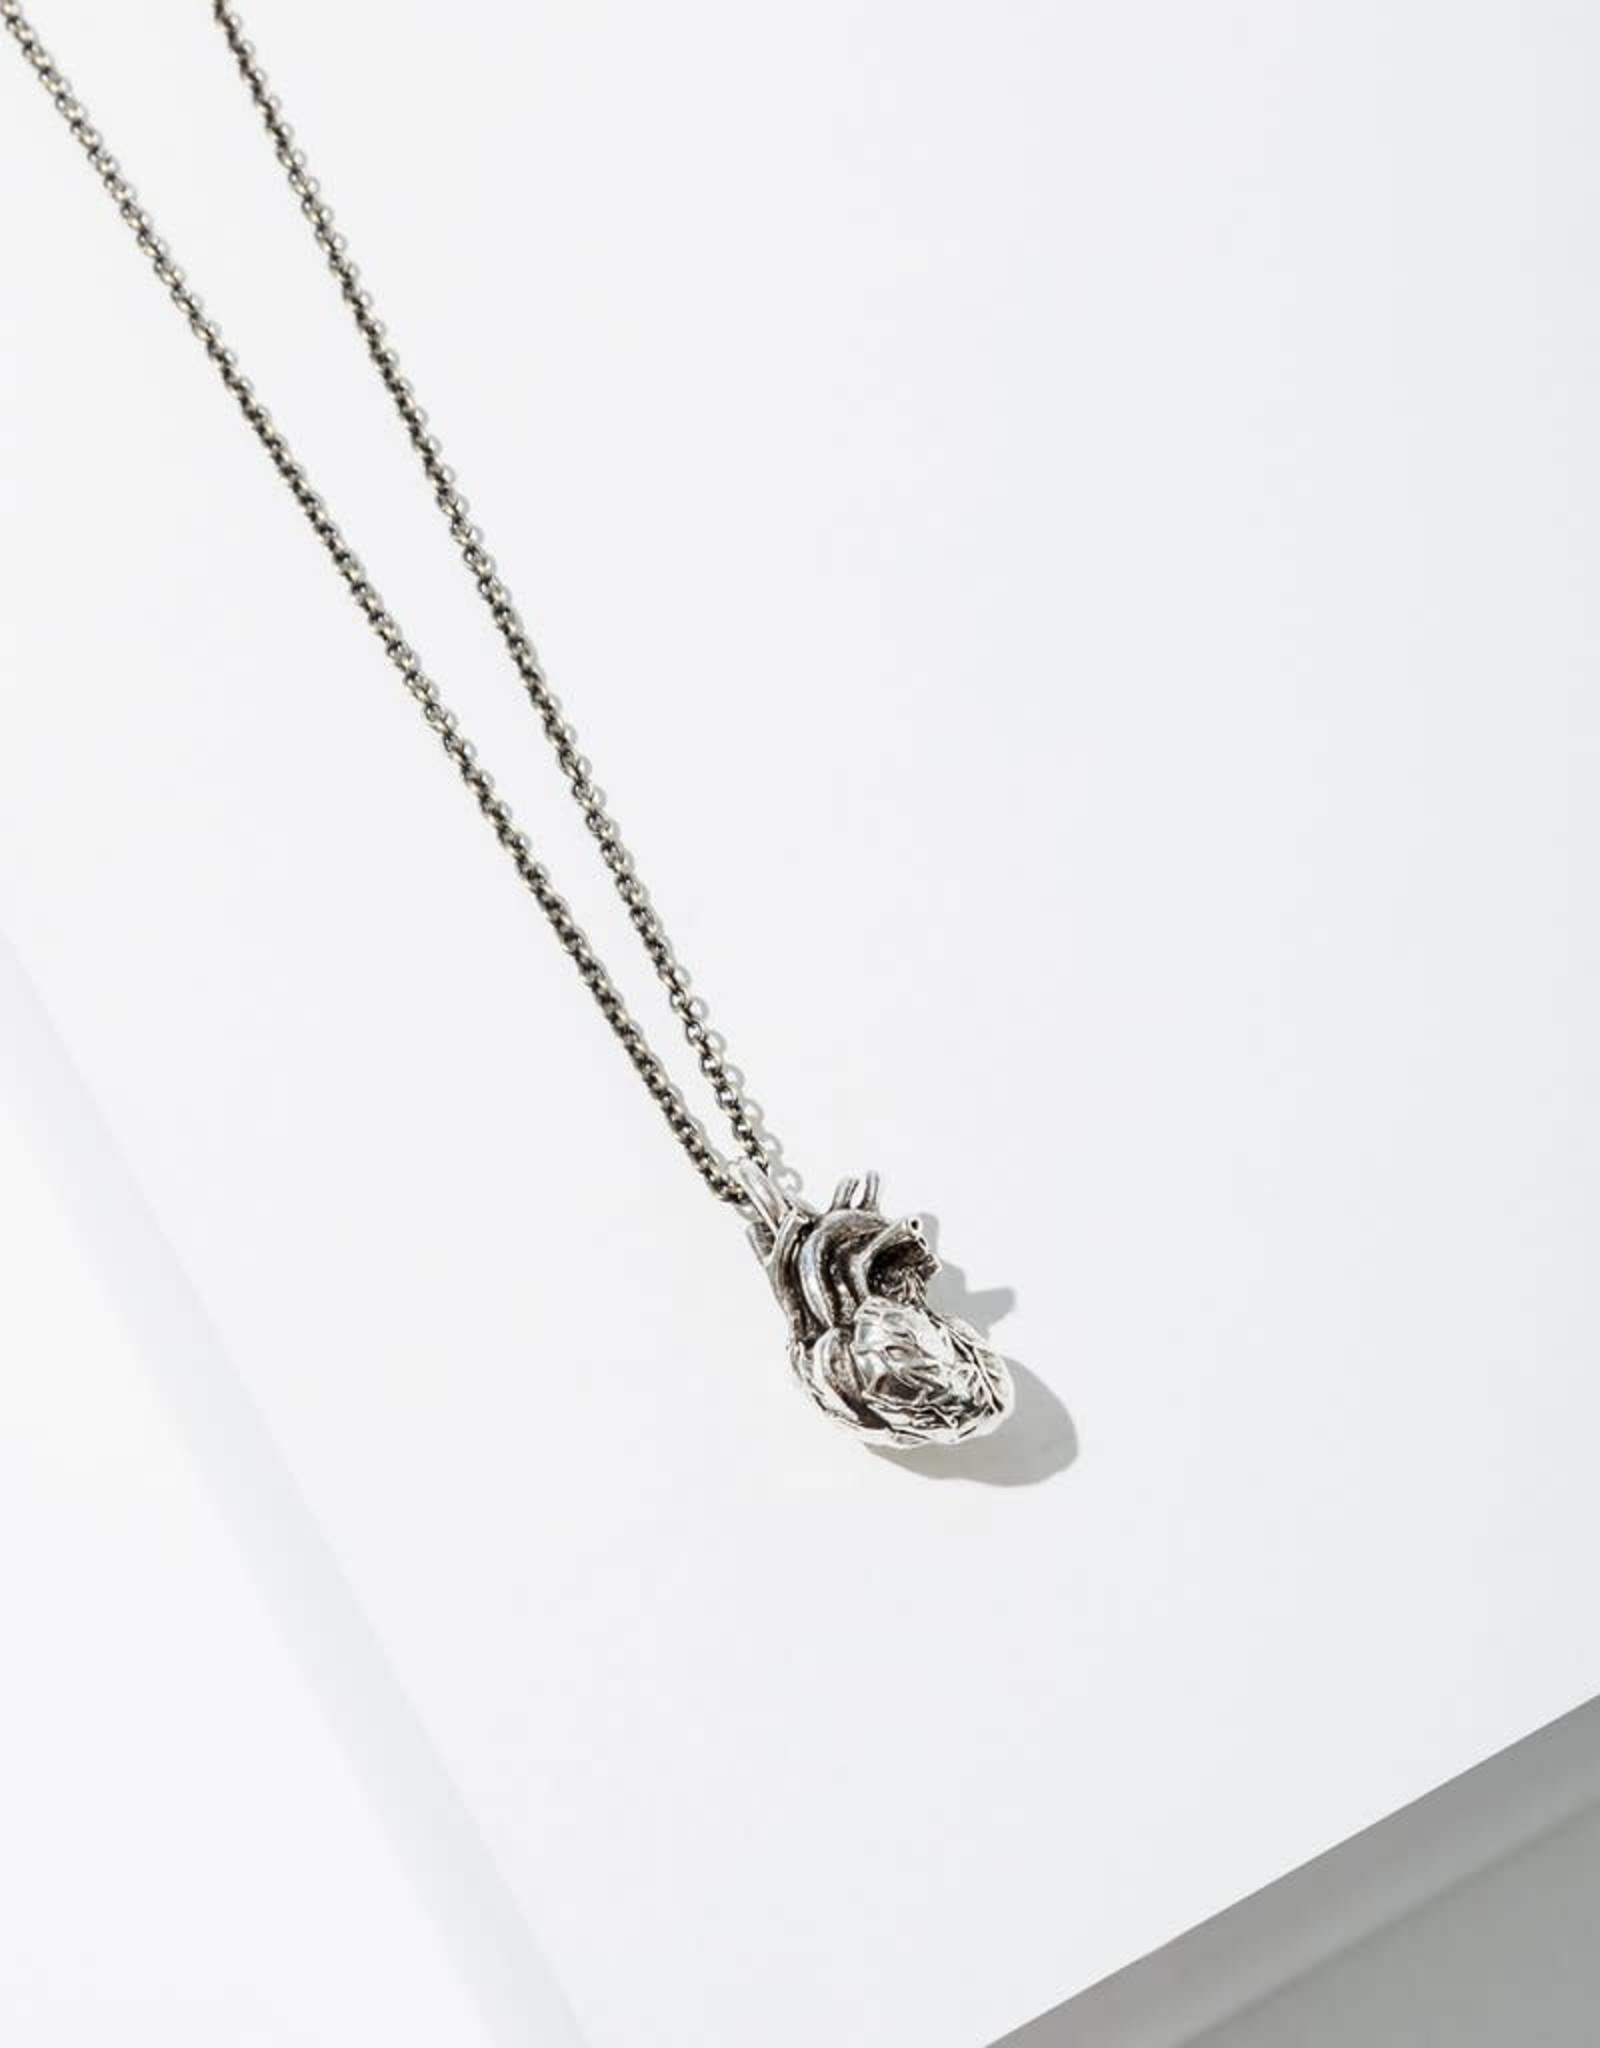 Larissa Loden Anatomical Brass Heart Necklace - Larissa Loden